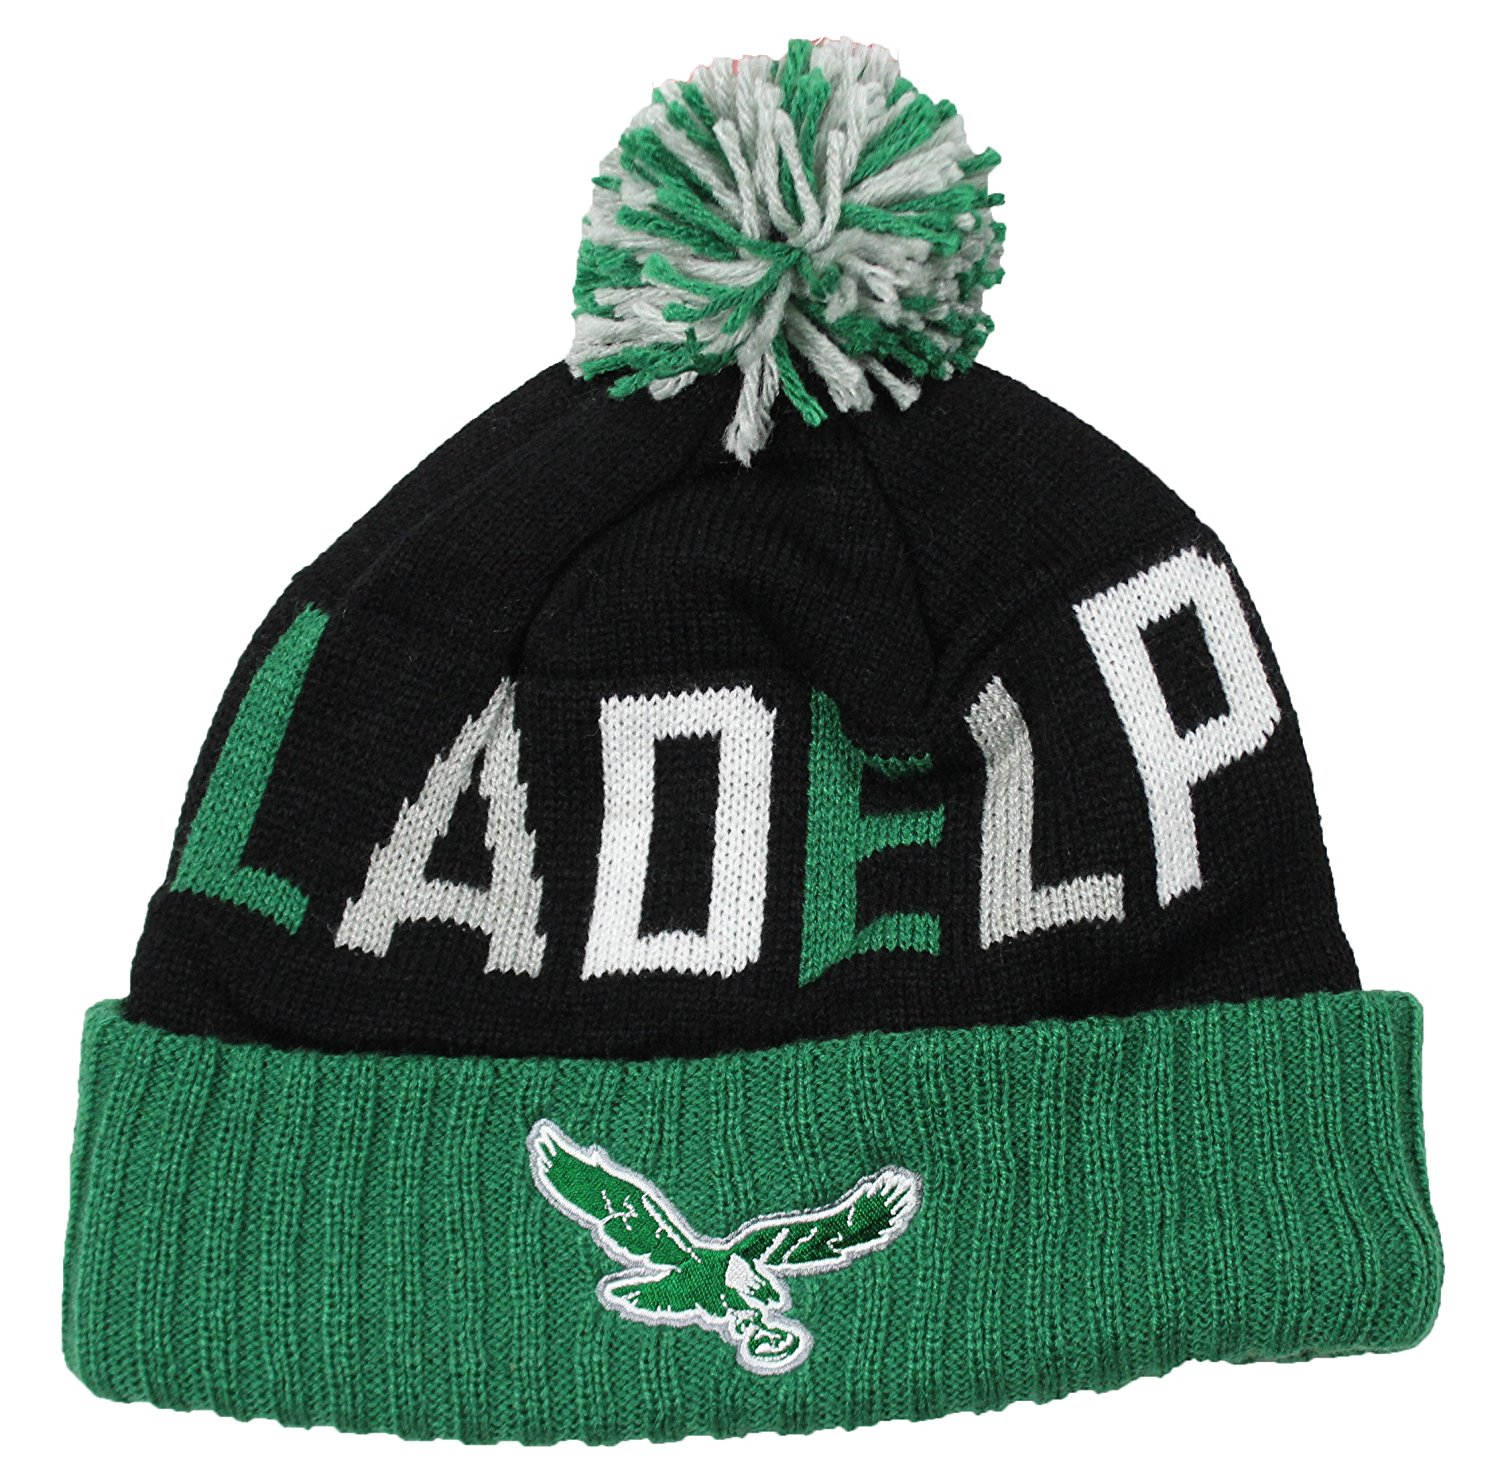 625d0acd7 Get Quotations · NFL Mitchell and Ness Cuffed Pom Knit Hats